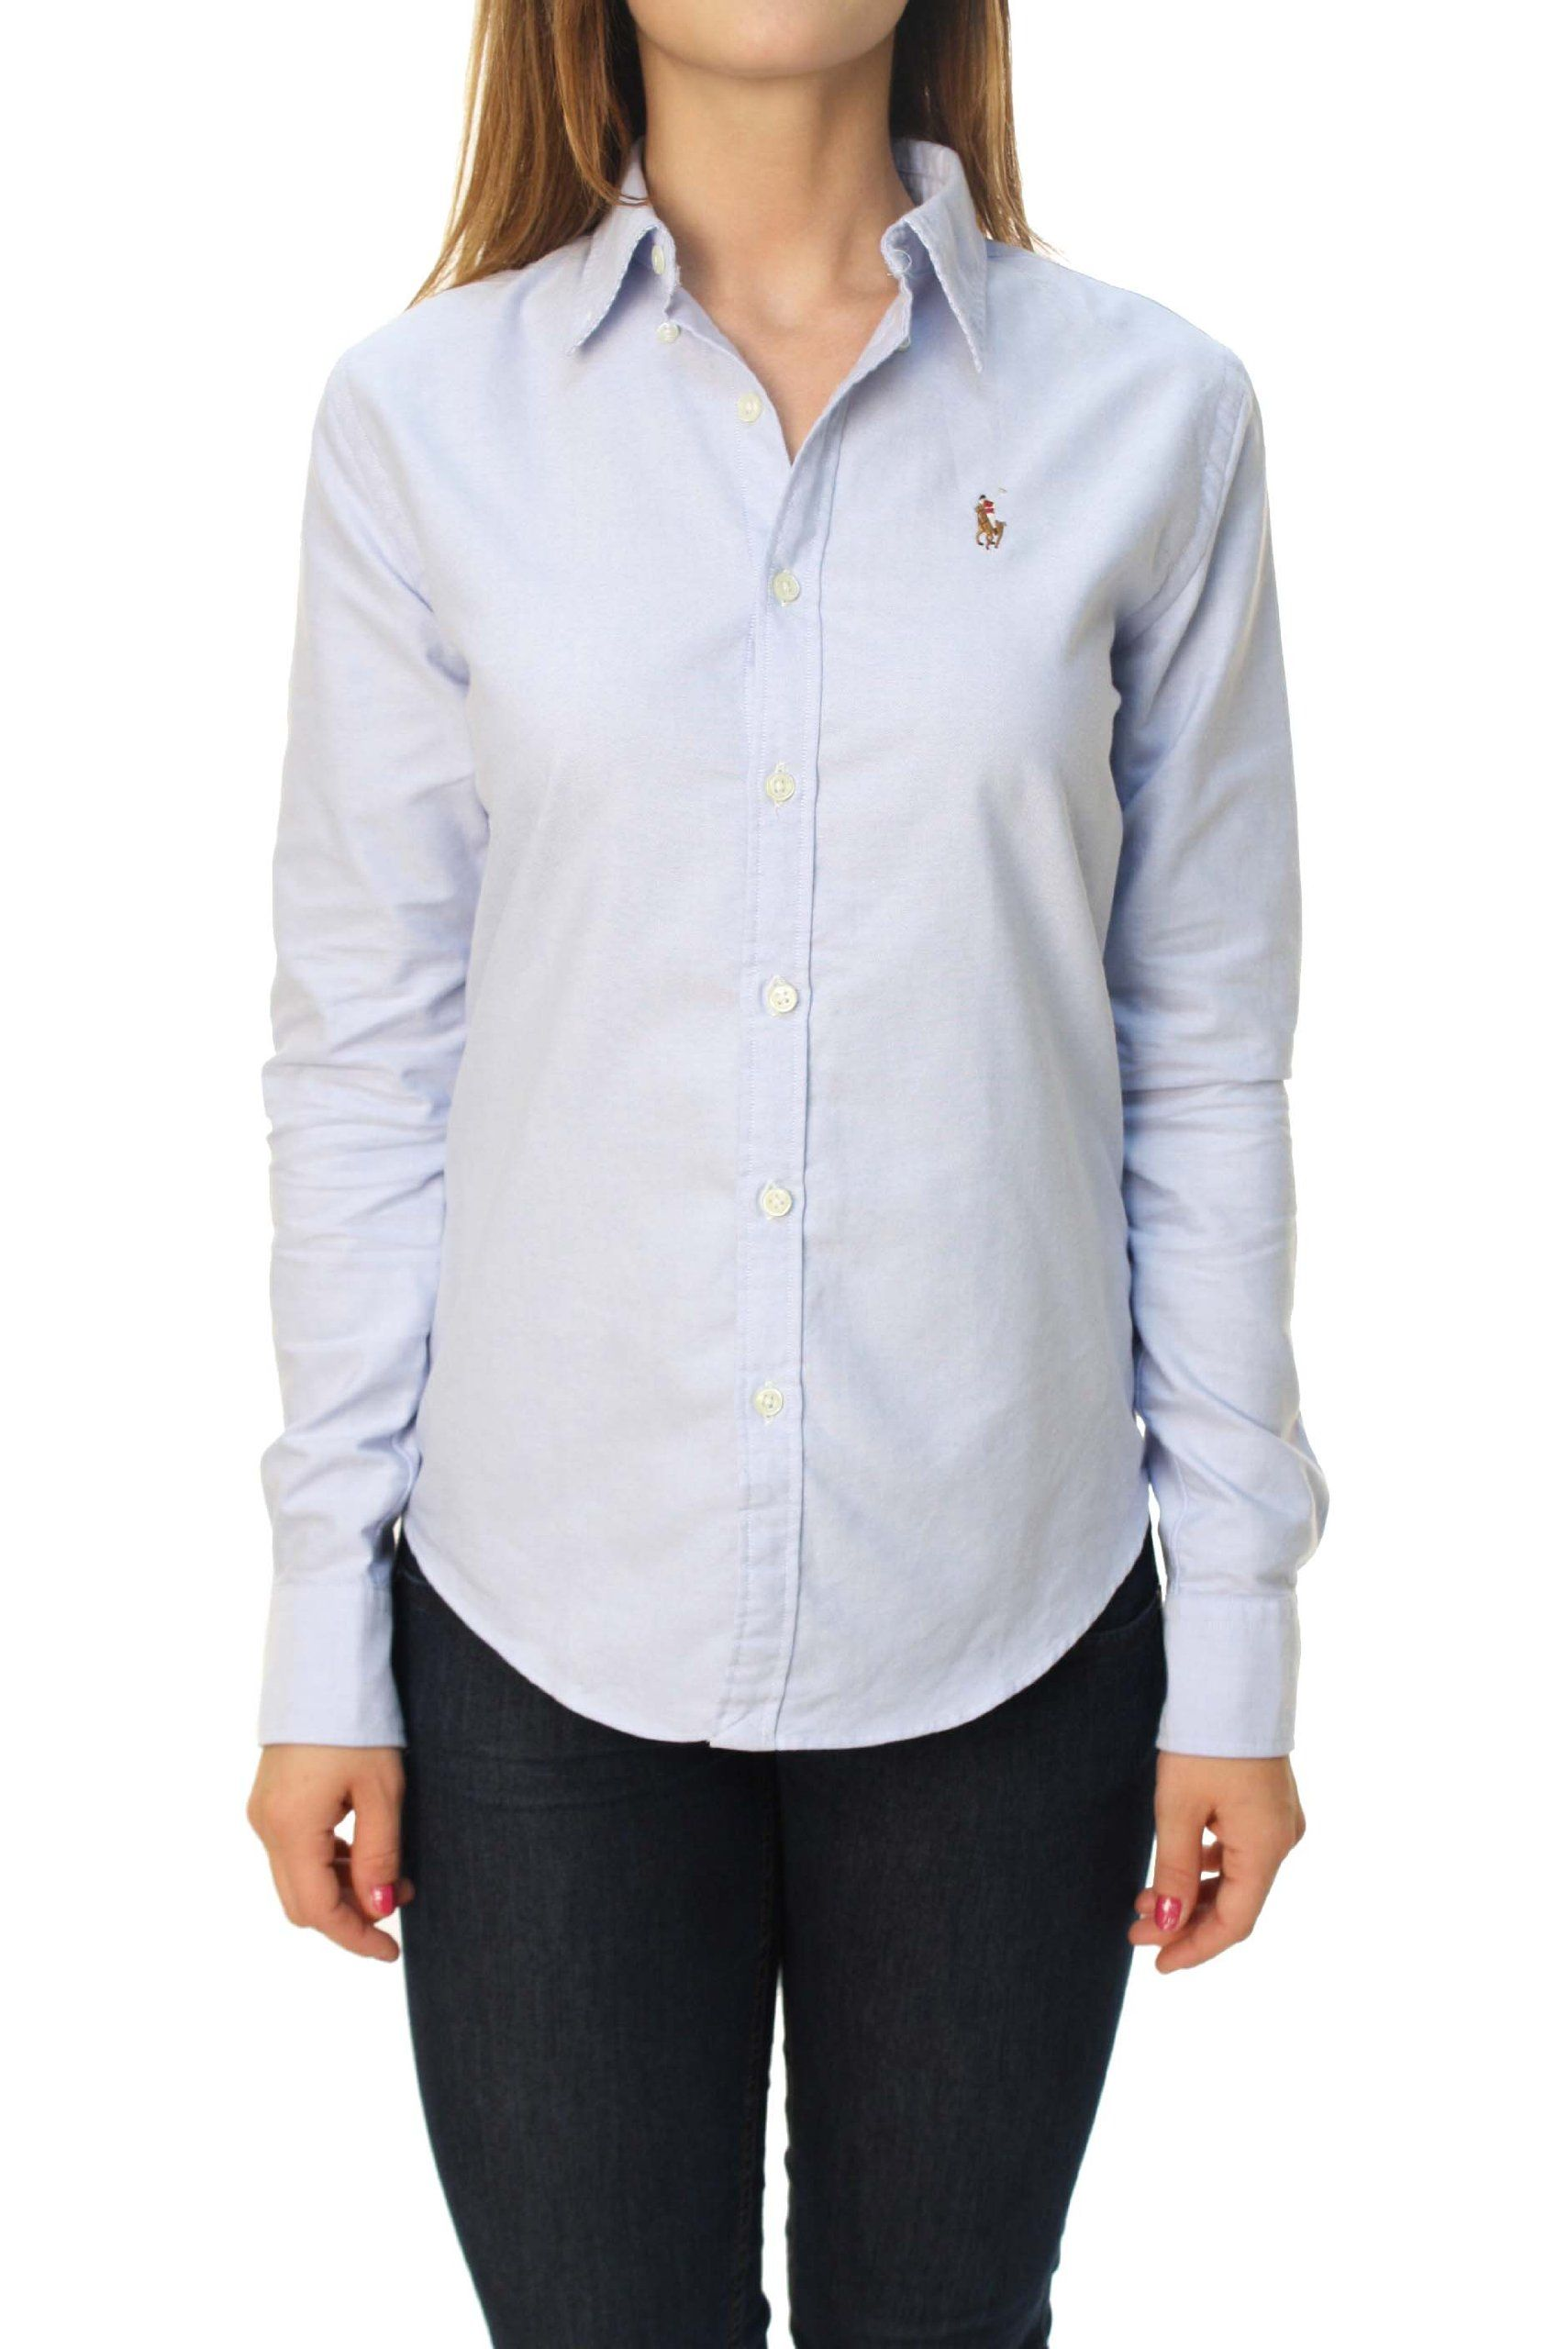 2038f6170bc Polo Ralph Lauren Women's Slim Fit Stripe Oxford Button Down Shirt at Amazon  Women's Clothing store: